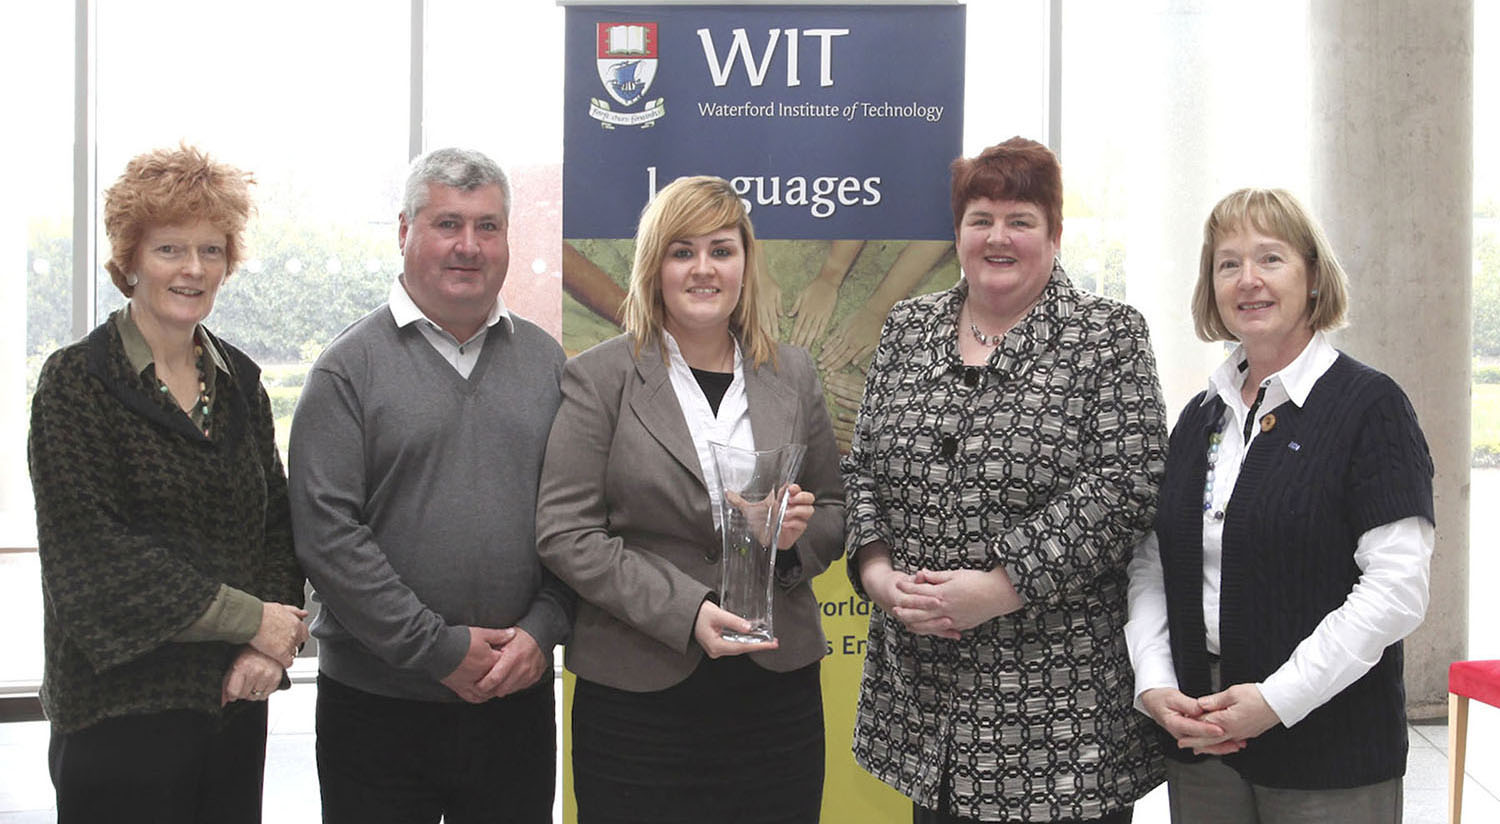 Pictured: Dr Fionnuala Kennedy, Lecturer in German and Intercultural Studies at WIT, Peter Roche, Eleanor Roche, Maria Roche and